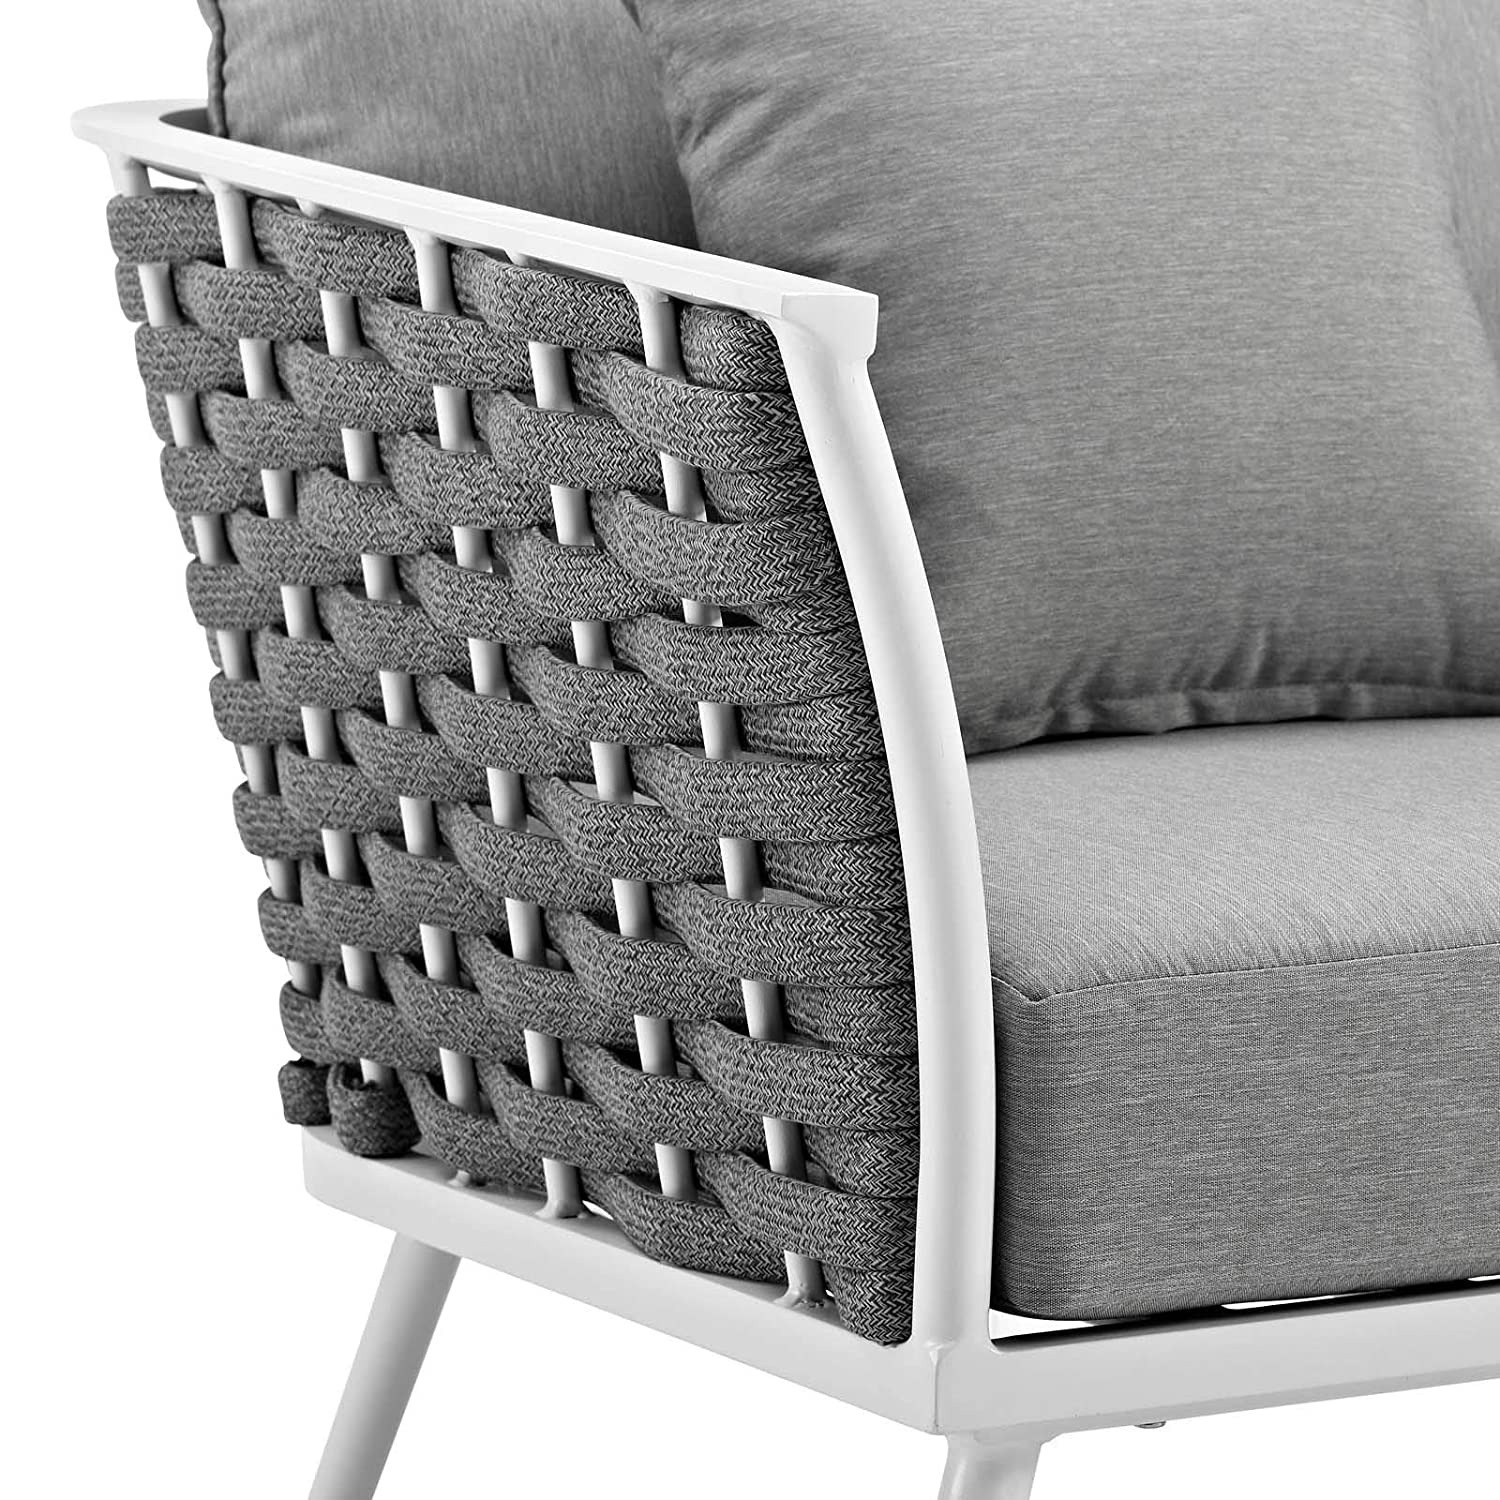 Outdoor Armchair In Gray Fabric W/ Woven Frame - image-3